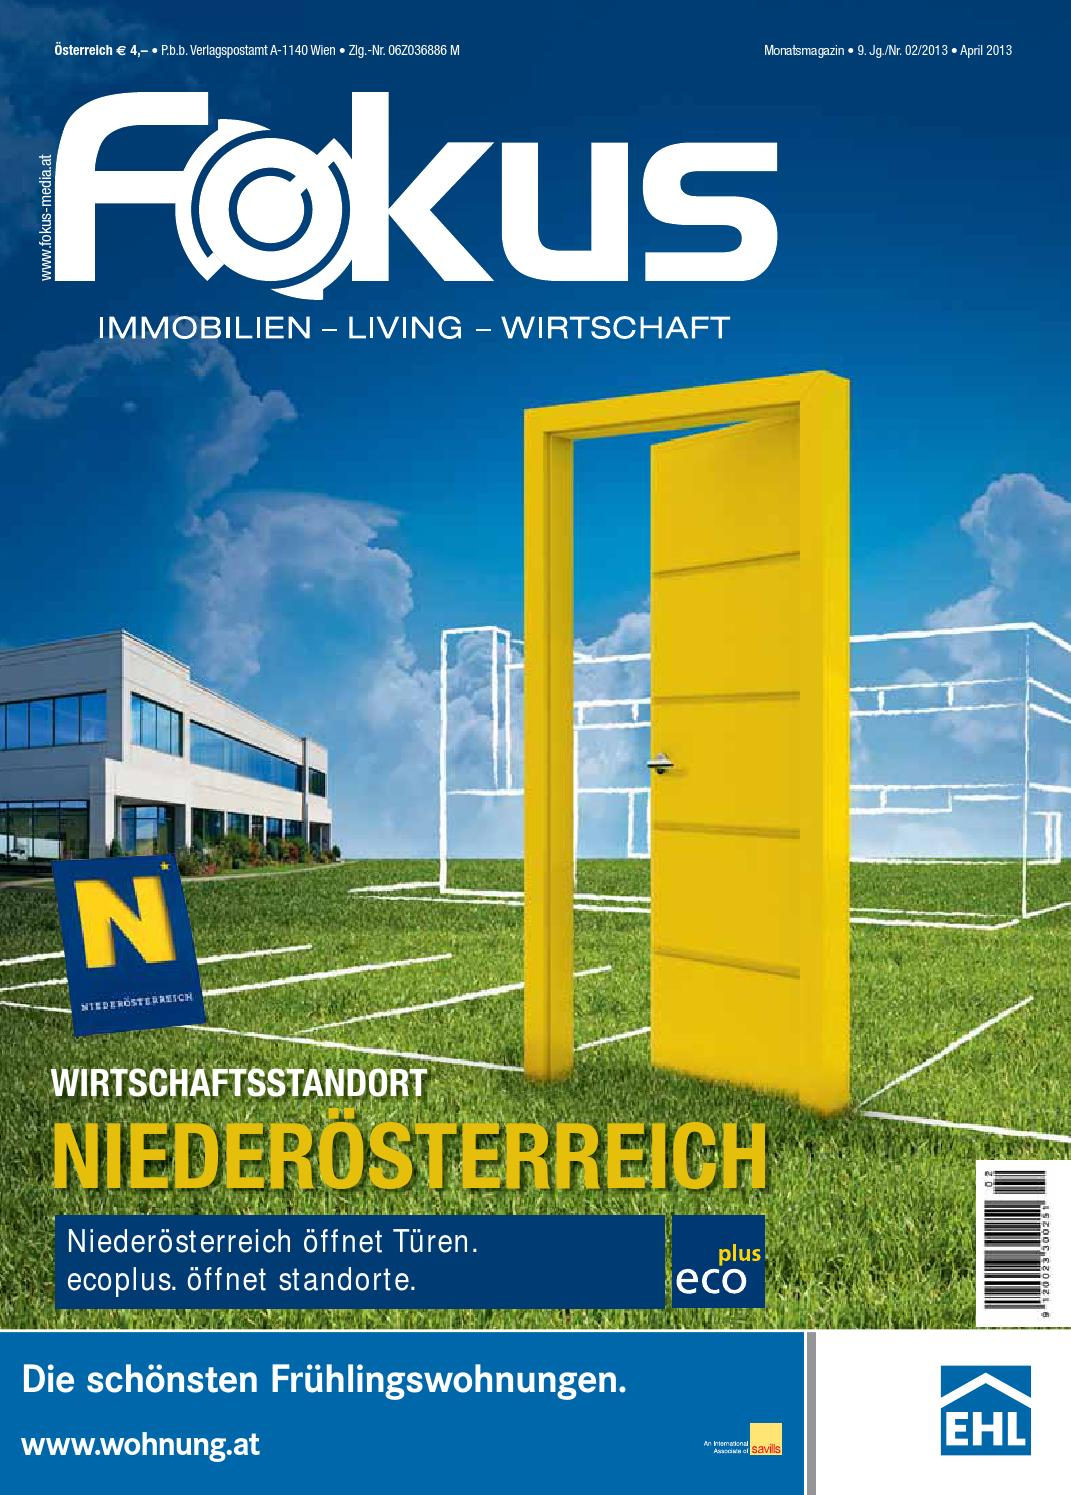 Fokus April 2013 by GNK Media House - issuu